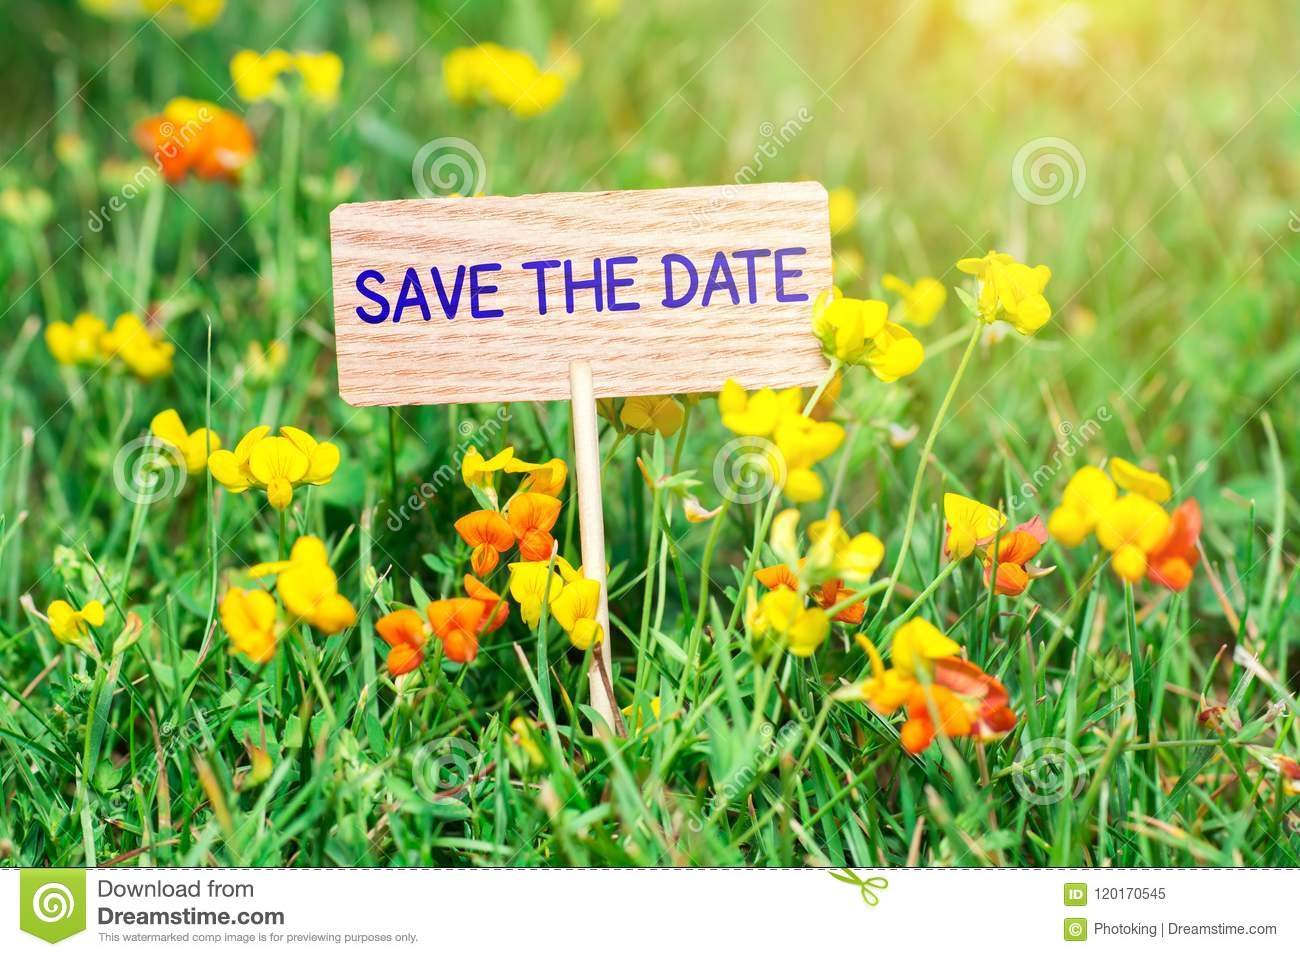 Save the date signboard